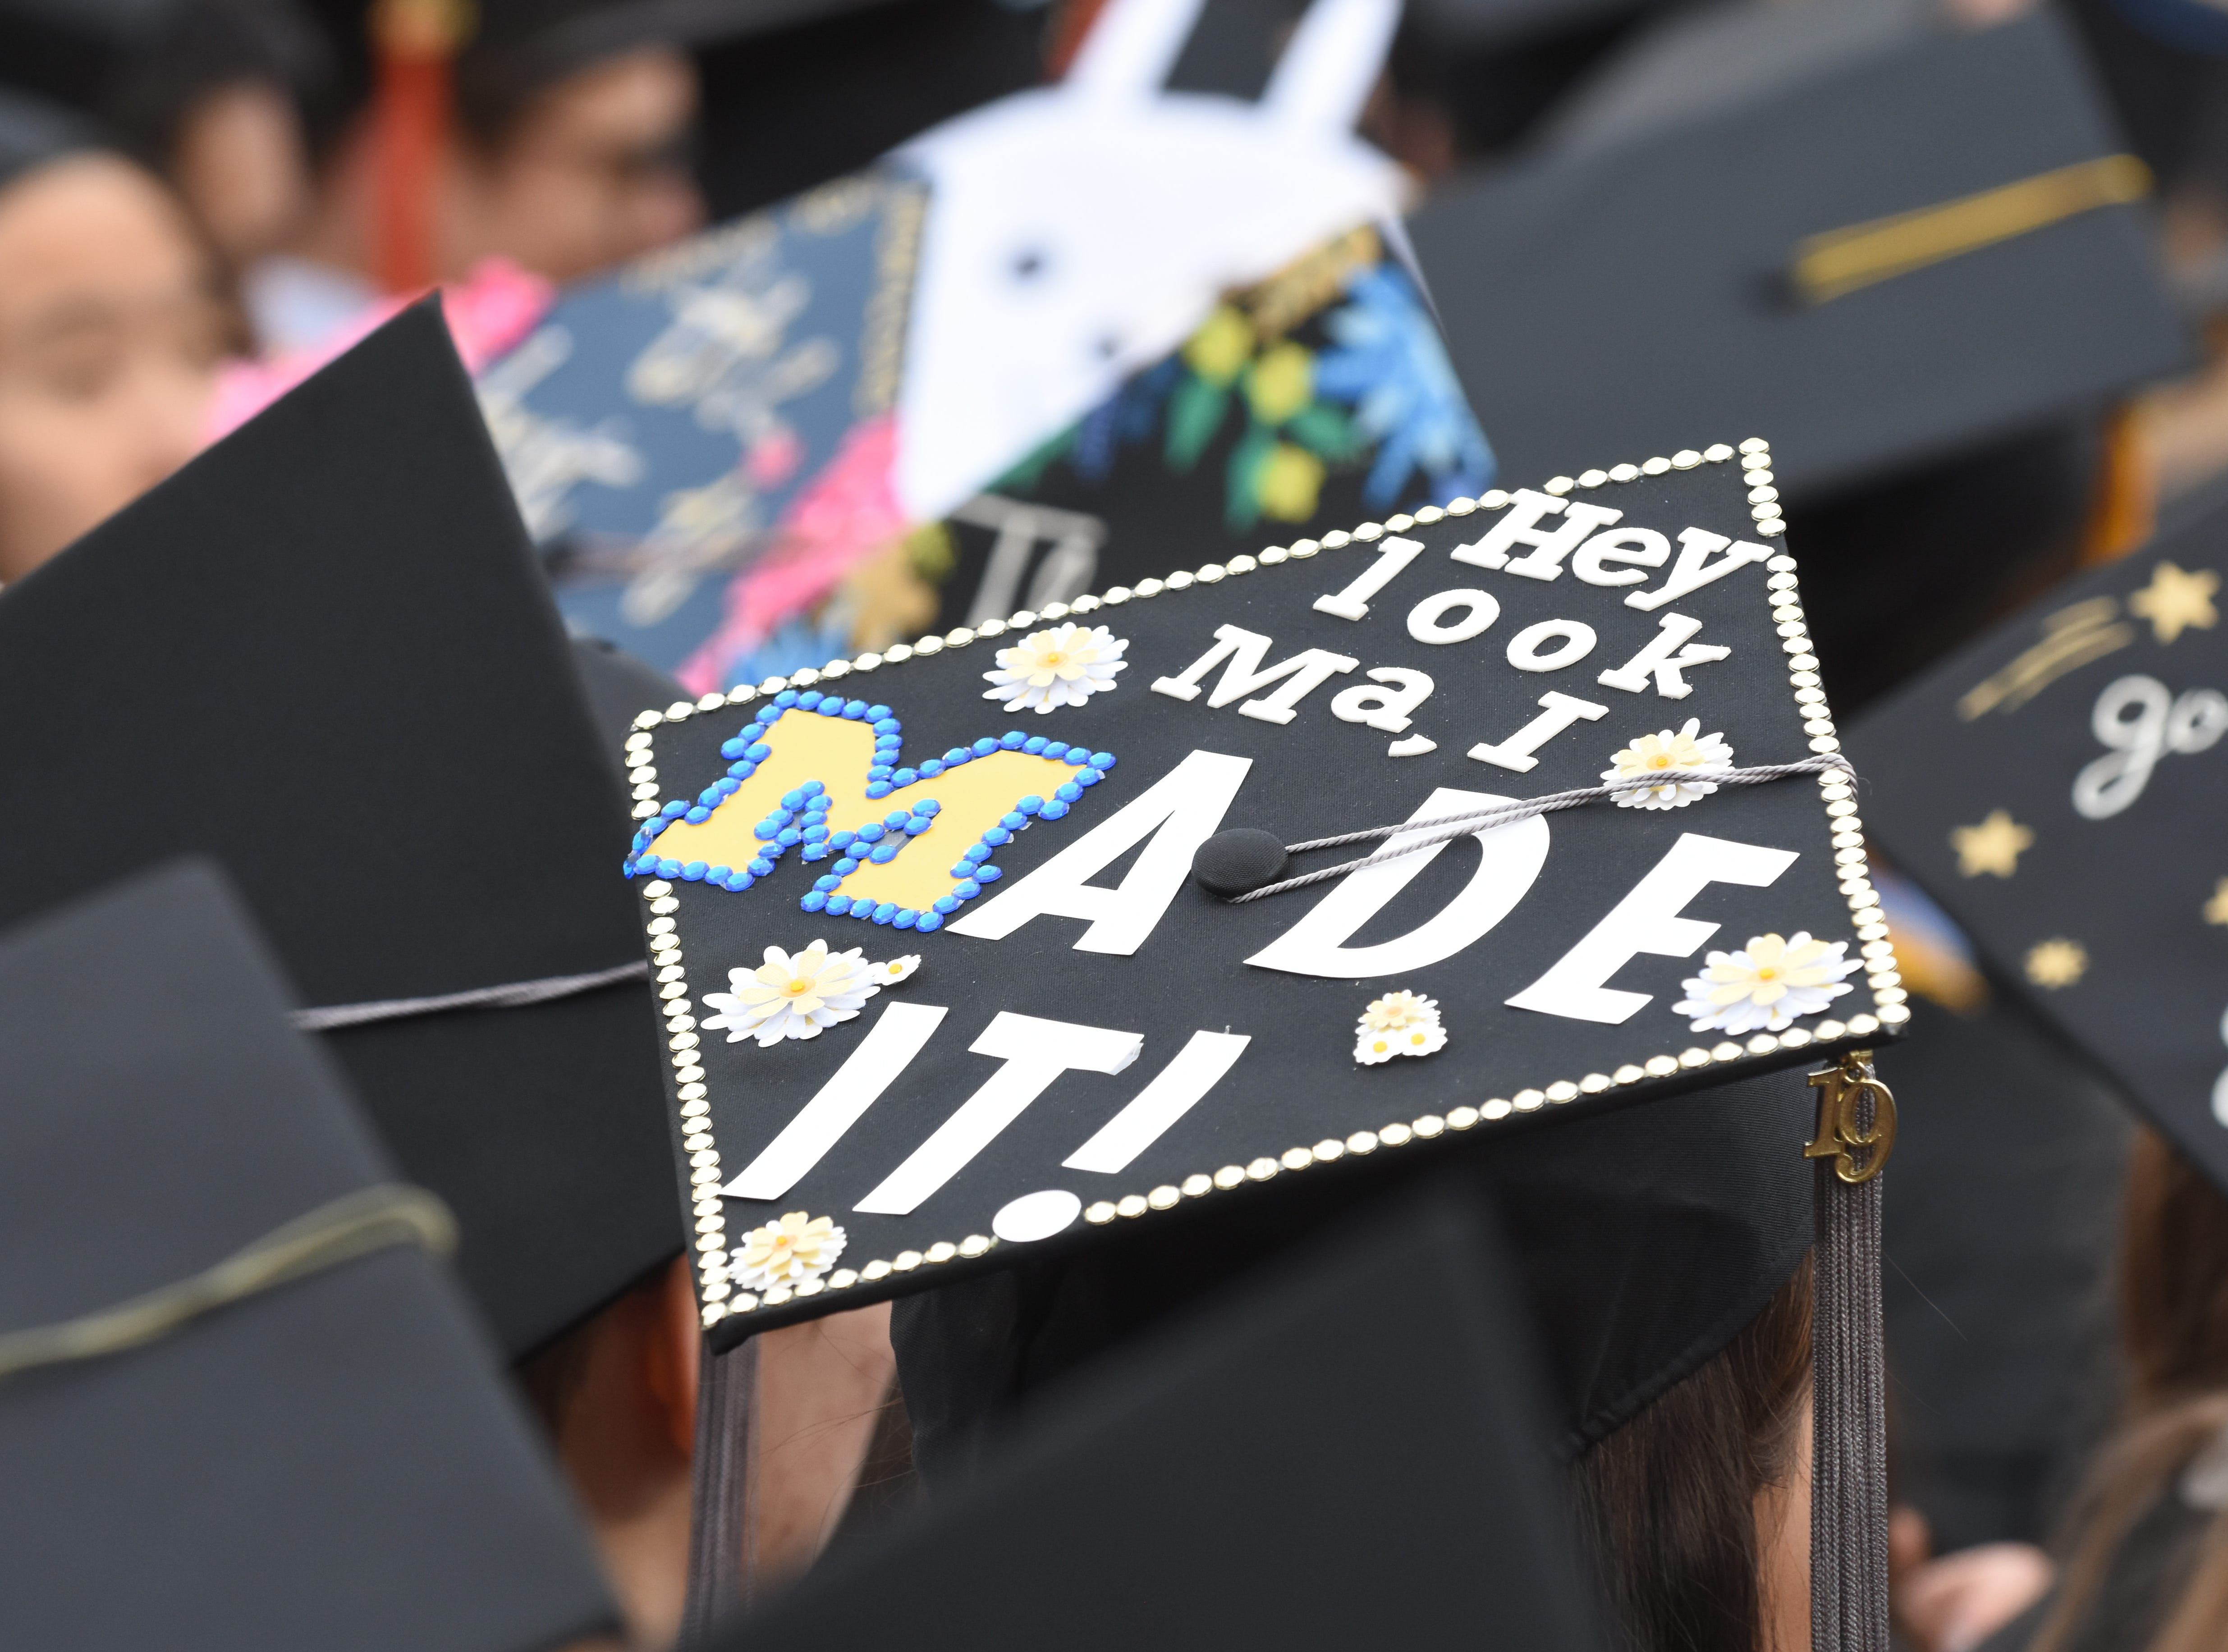 A University of Michigan student thanks her mother at commencement exercises in Ann Arbor.